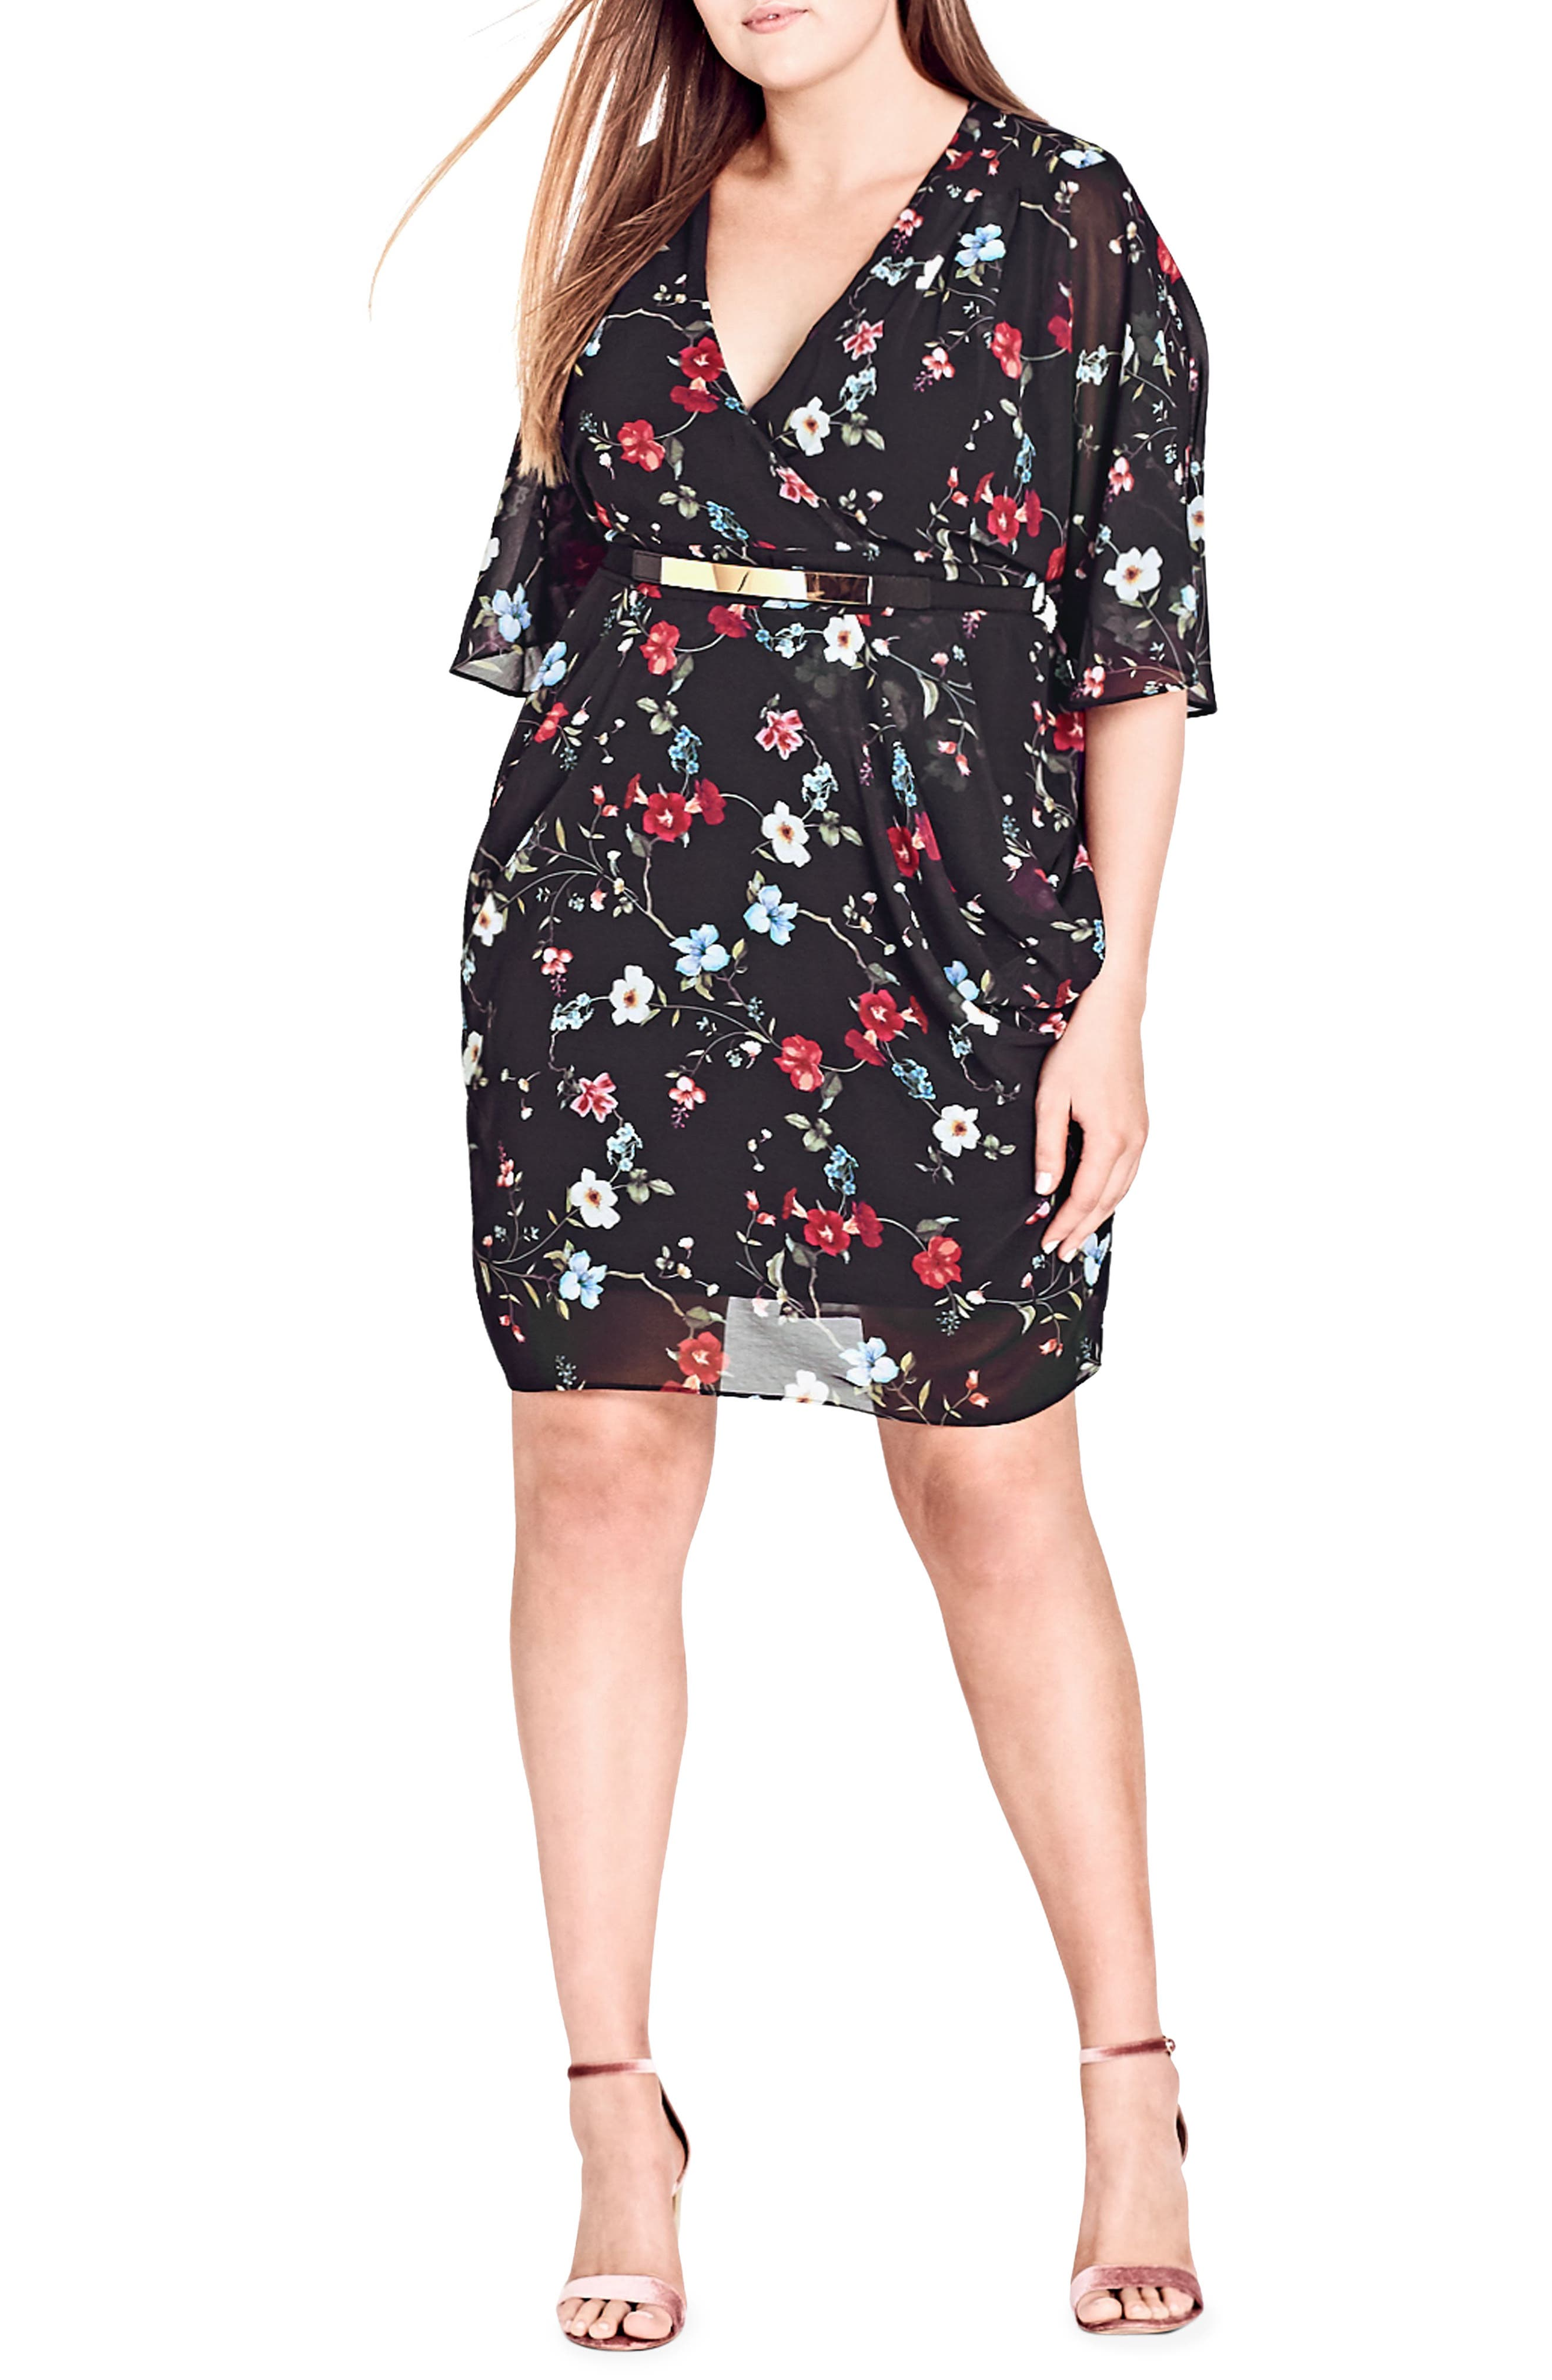 Alternate Image 1 Selected - City Chic Floral Allure Belted Faux Wrap Dress (Plus Size)